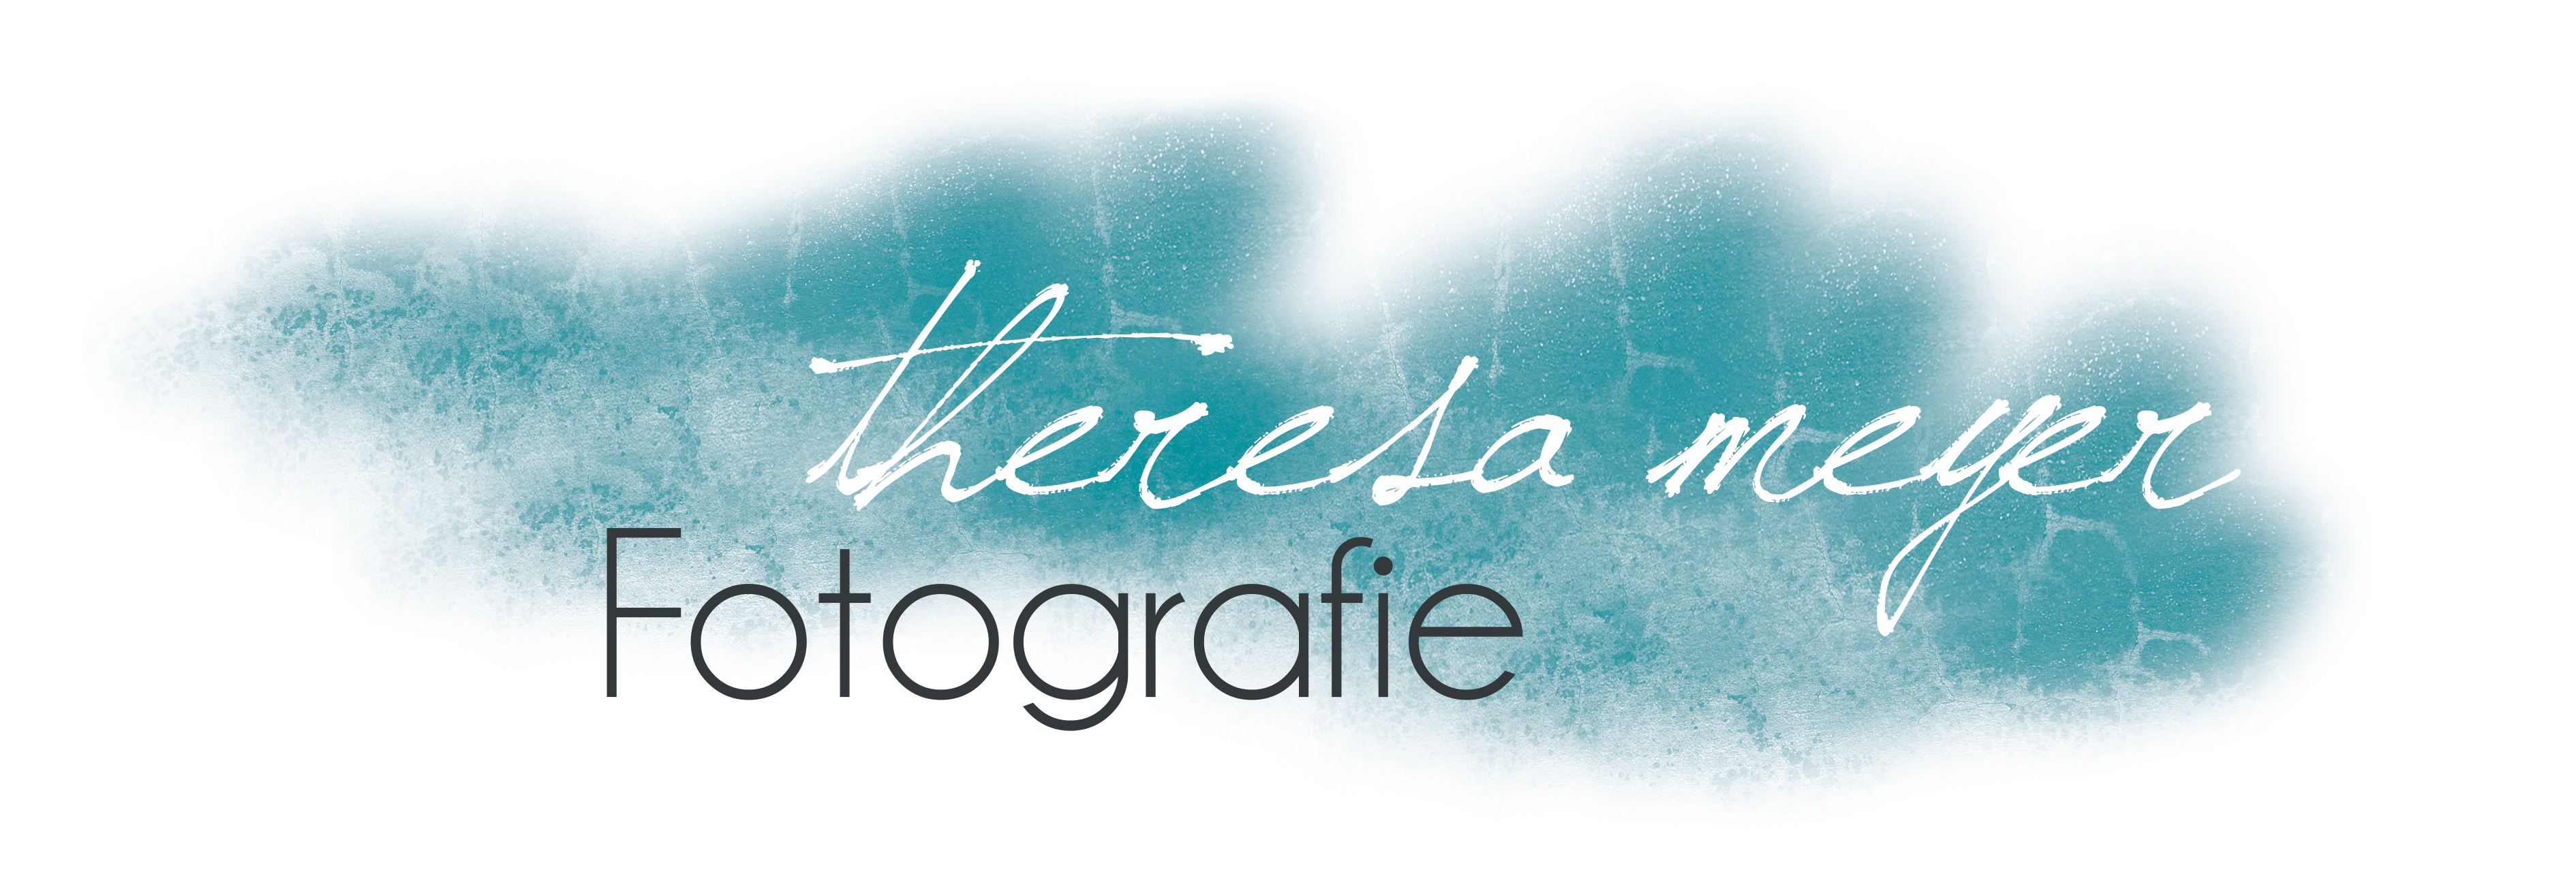 Theresa Meyer - Fotografie